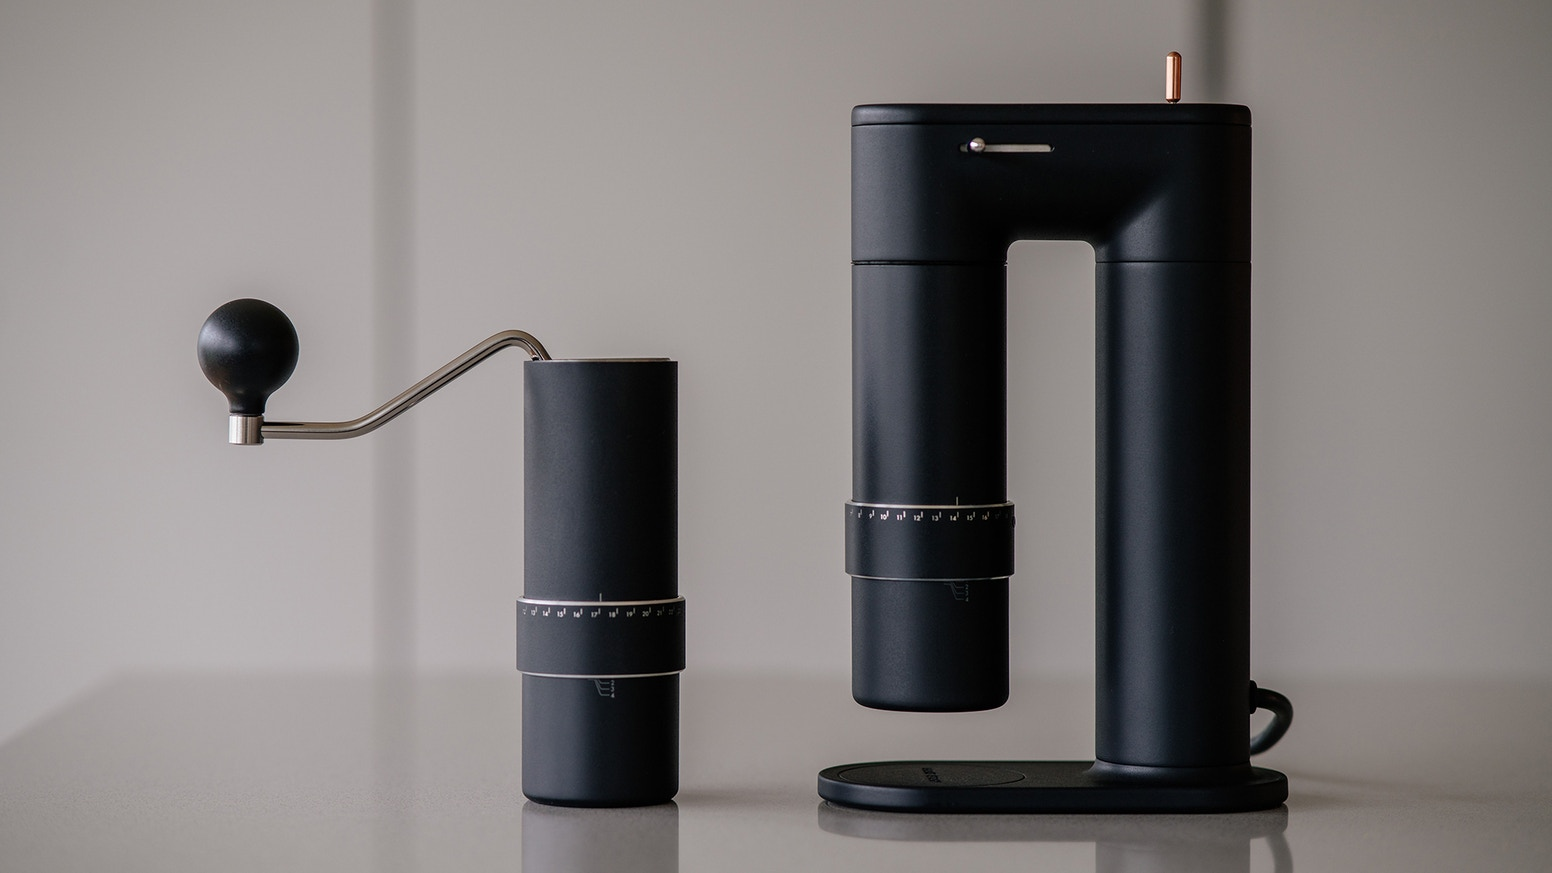 ARCO 2-in-1 Coffee Grinder